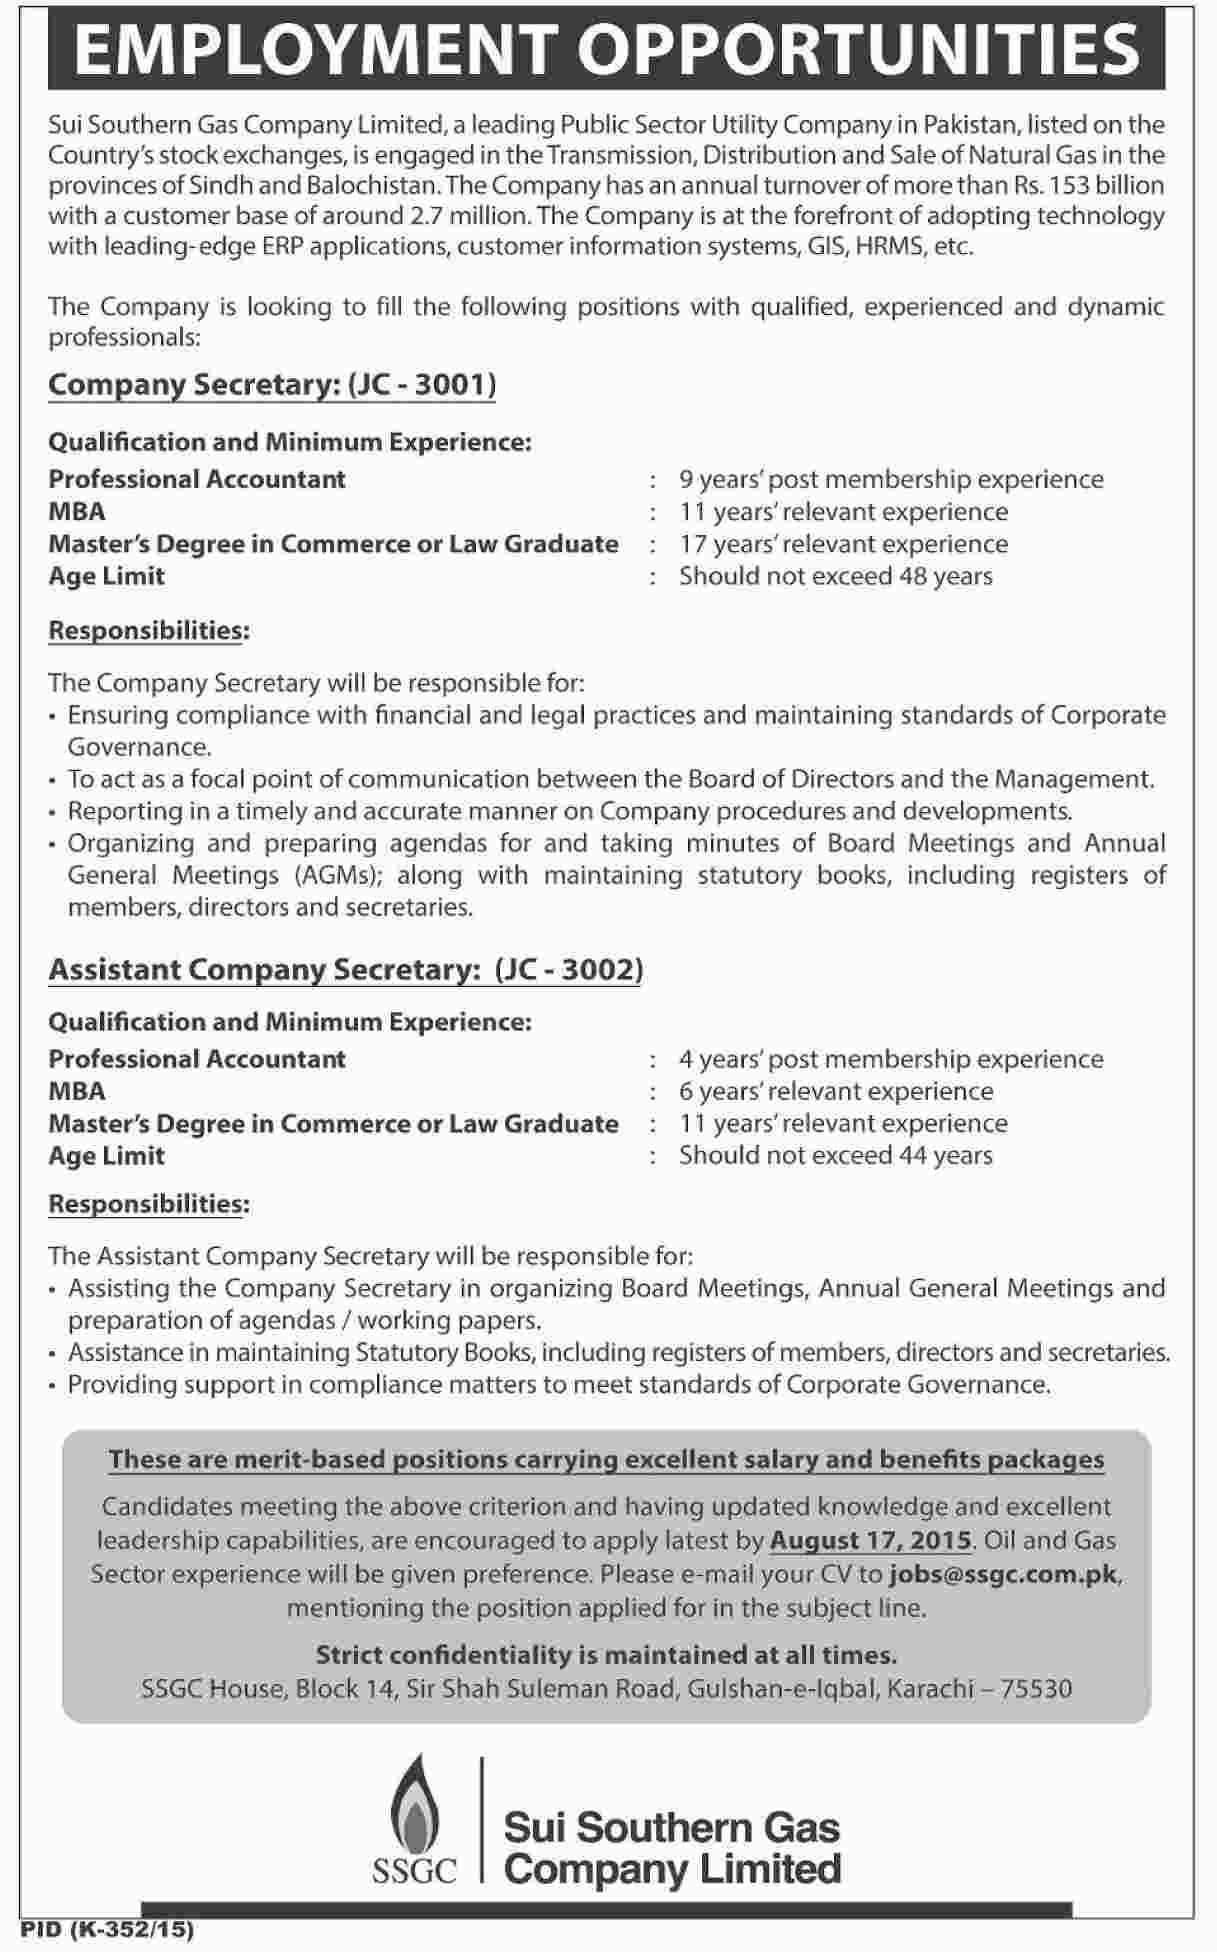 Sui Southern Gas Company SSGC Jobs 2015 Secretary, Assistant Secretary Apply Online